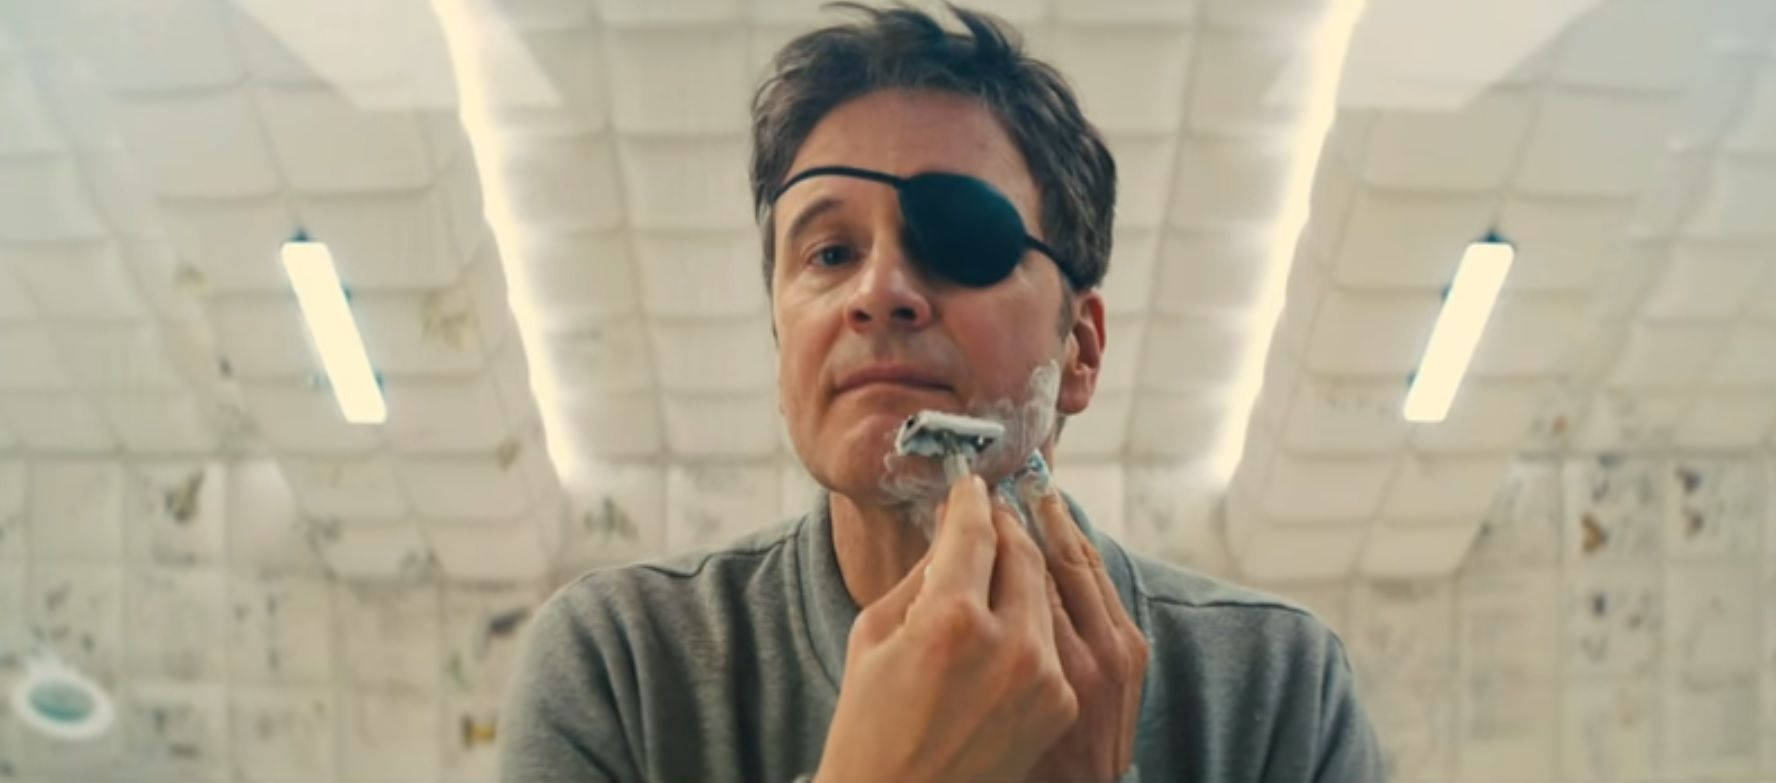 Colin Firth in Kingsman 2